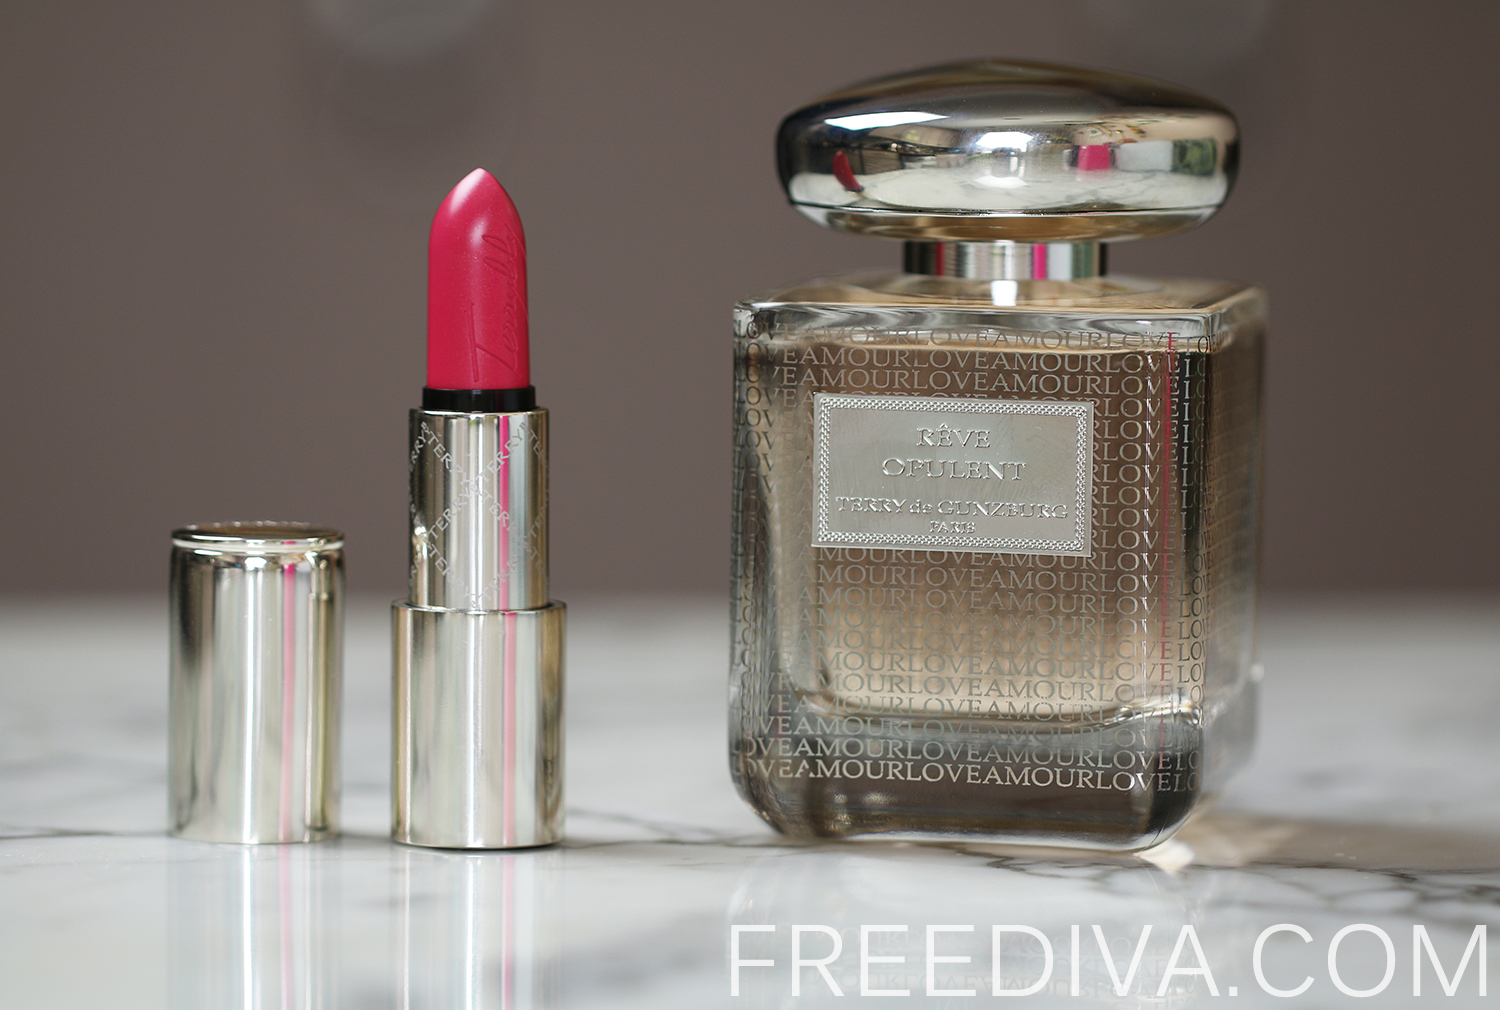 Reve Opulent Love Edition Terry de Gunzburg